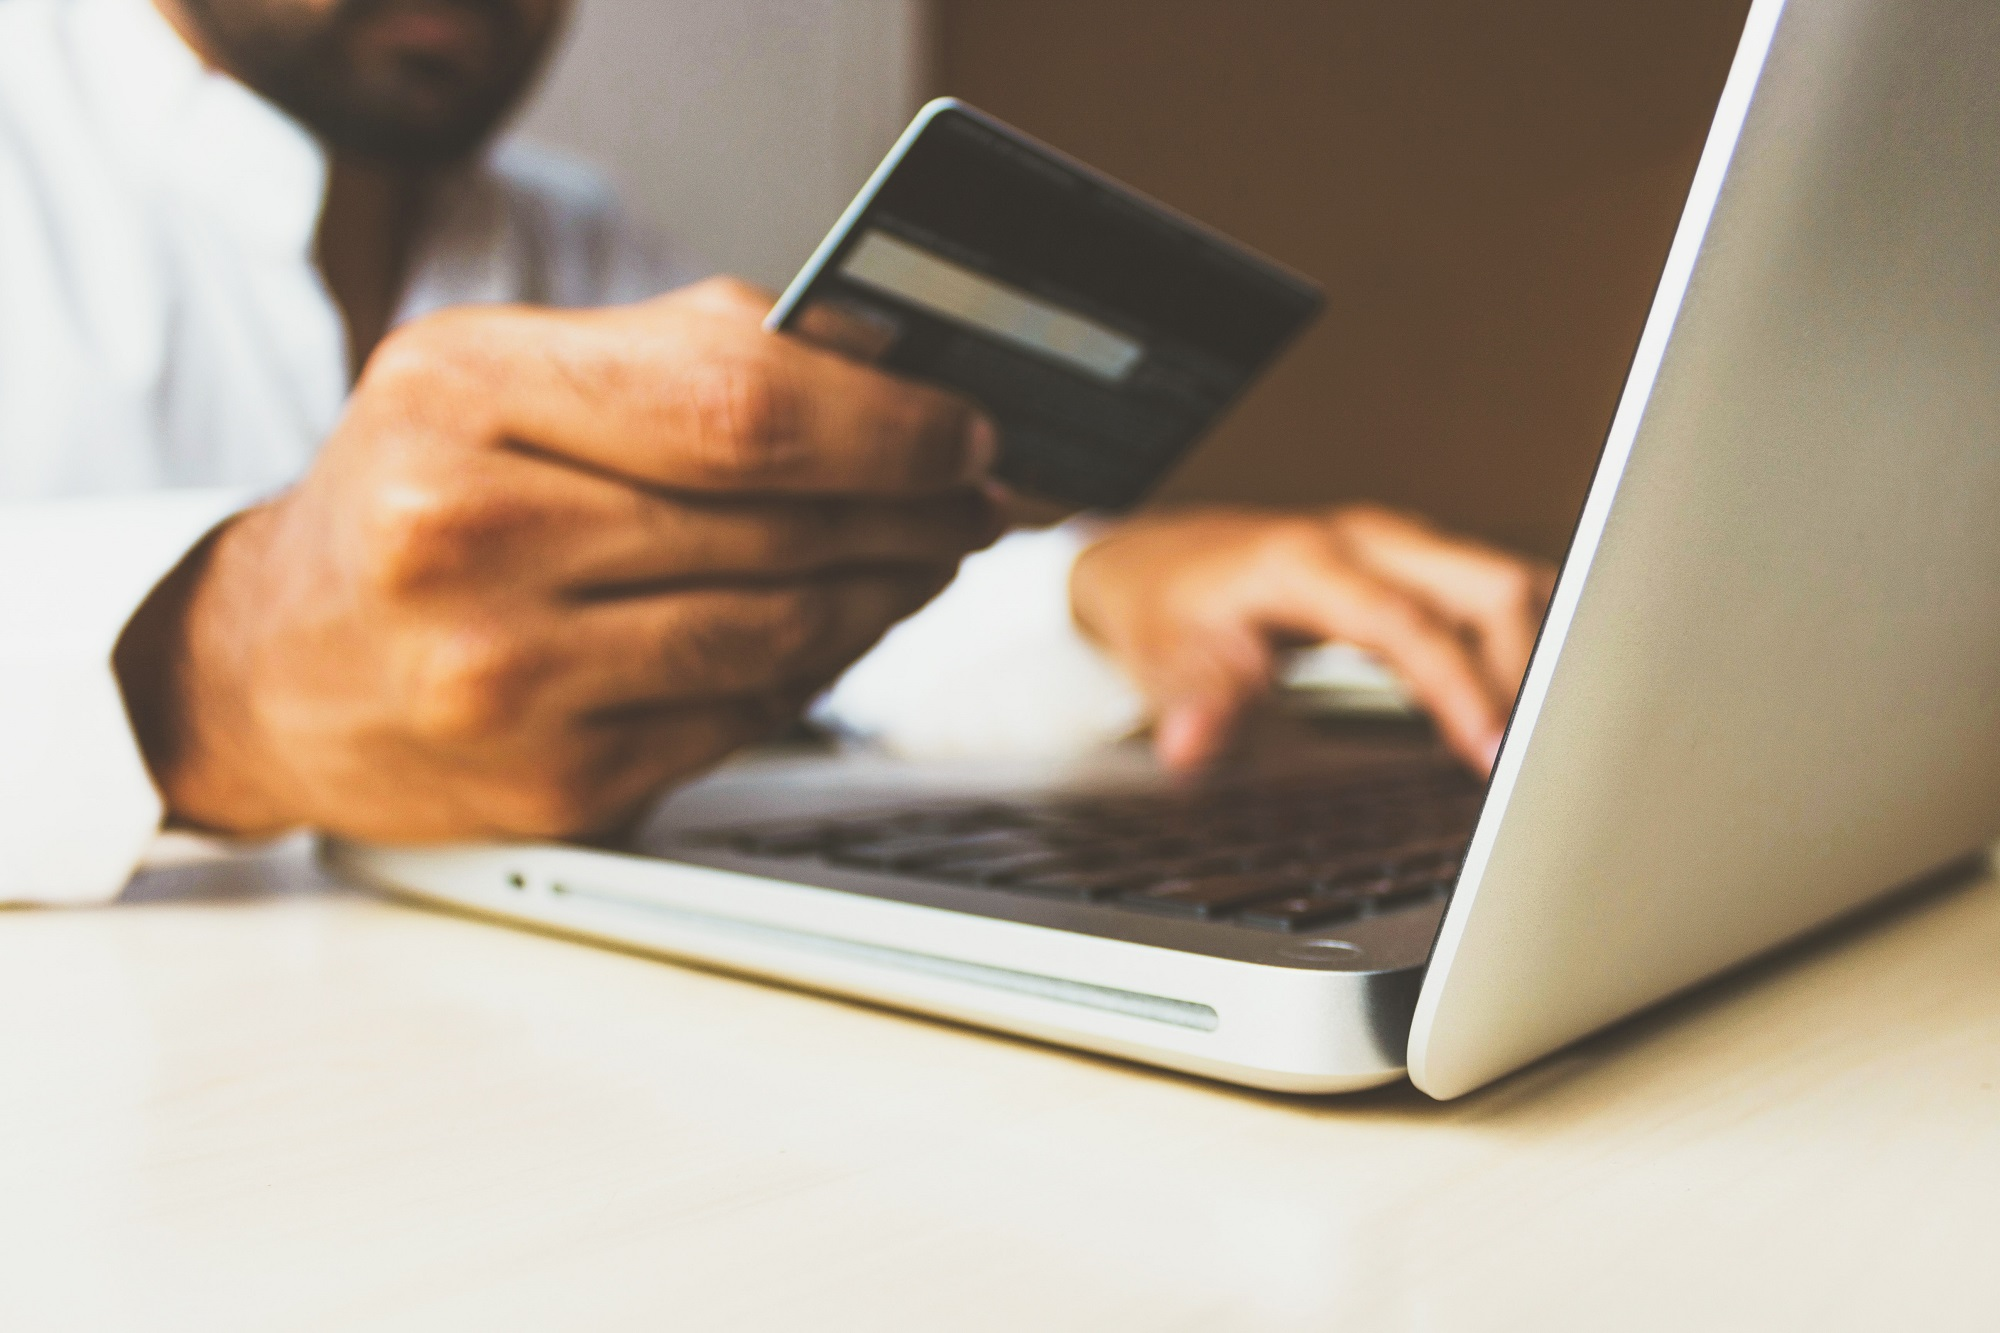 How online retailing is increasing carbon emissions